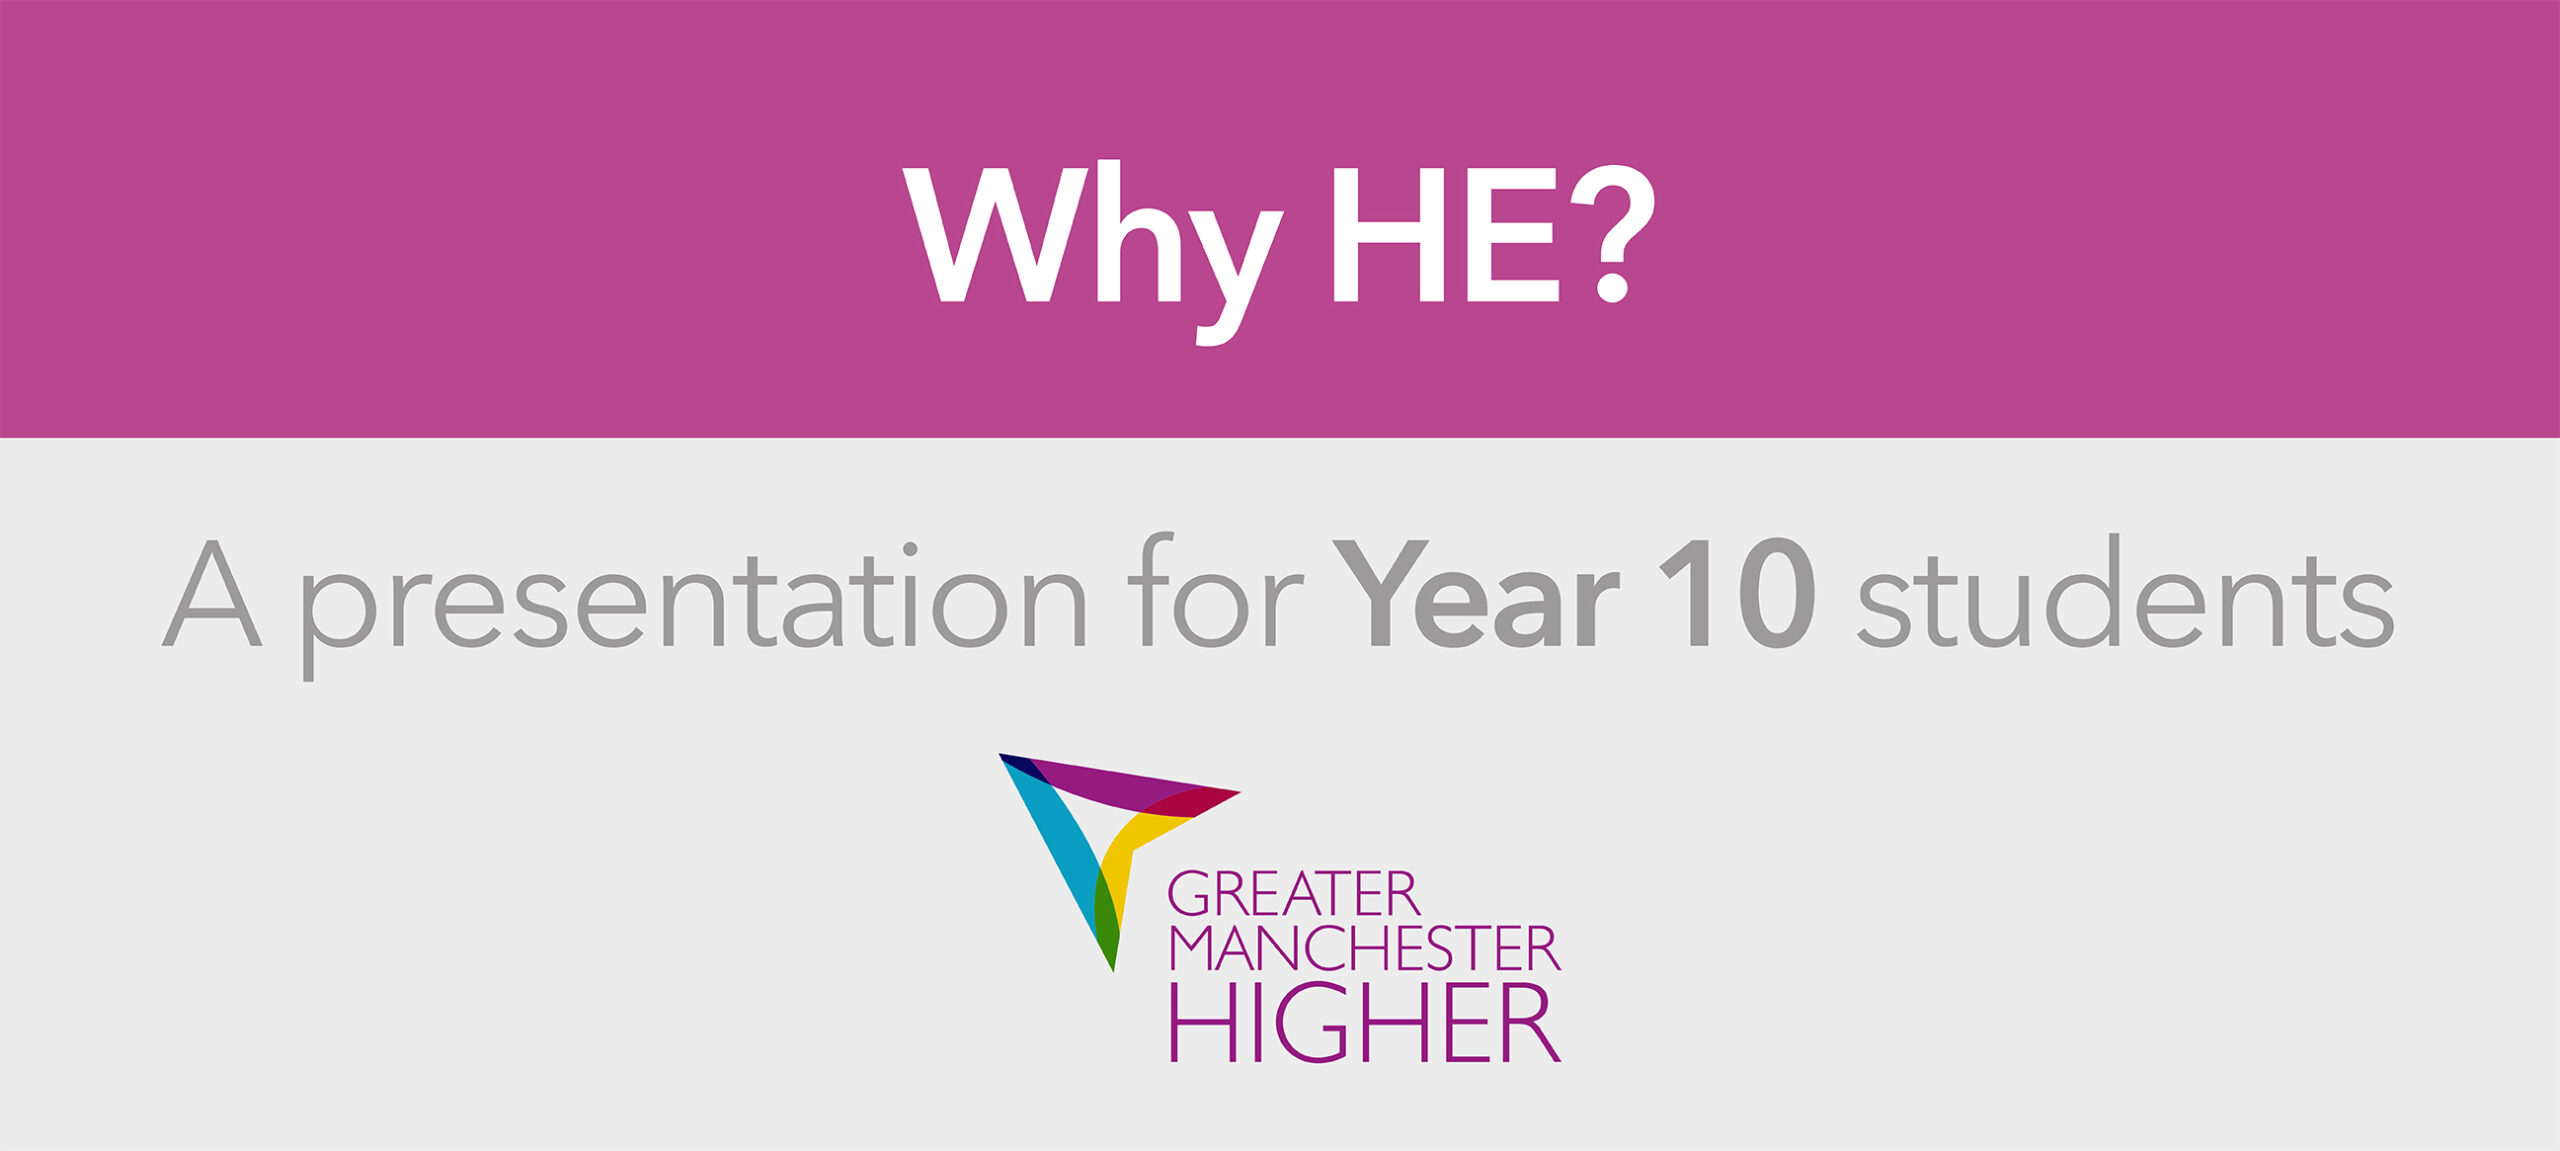 Why HE? Life After Year 11 presentation for Year 10 students